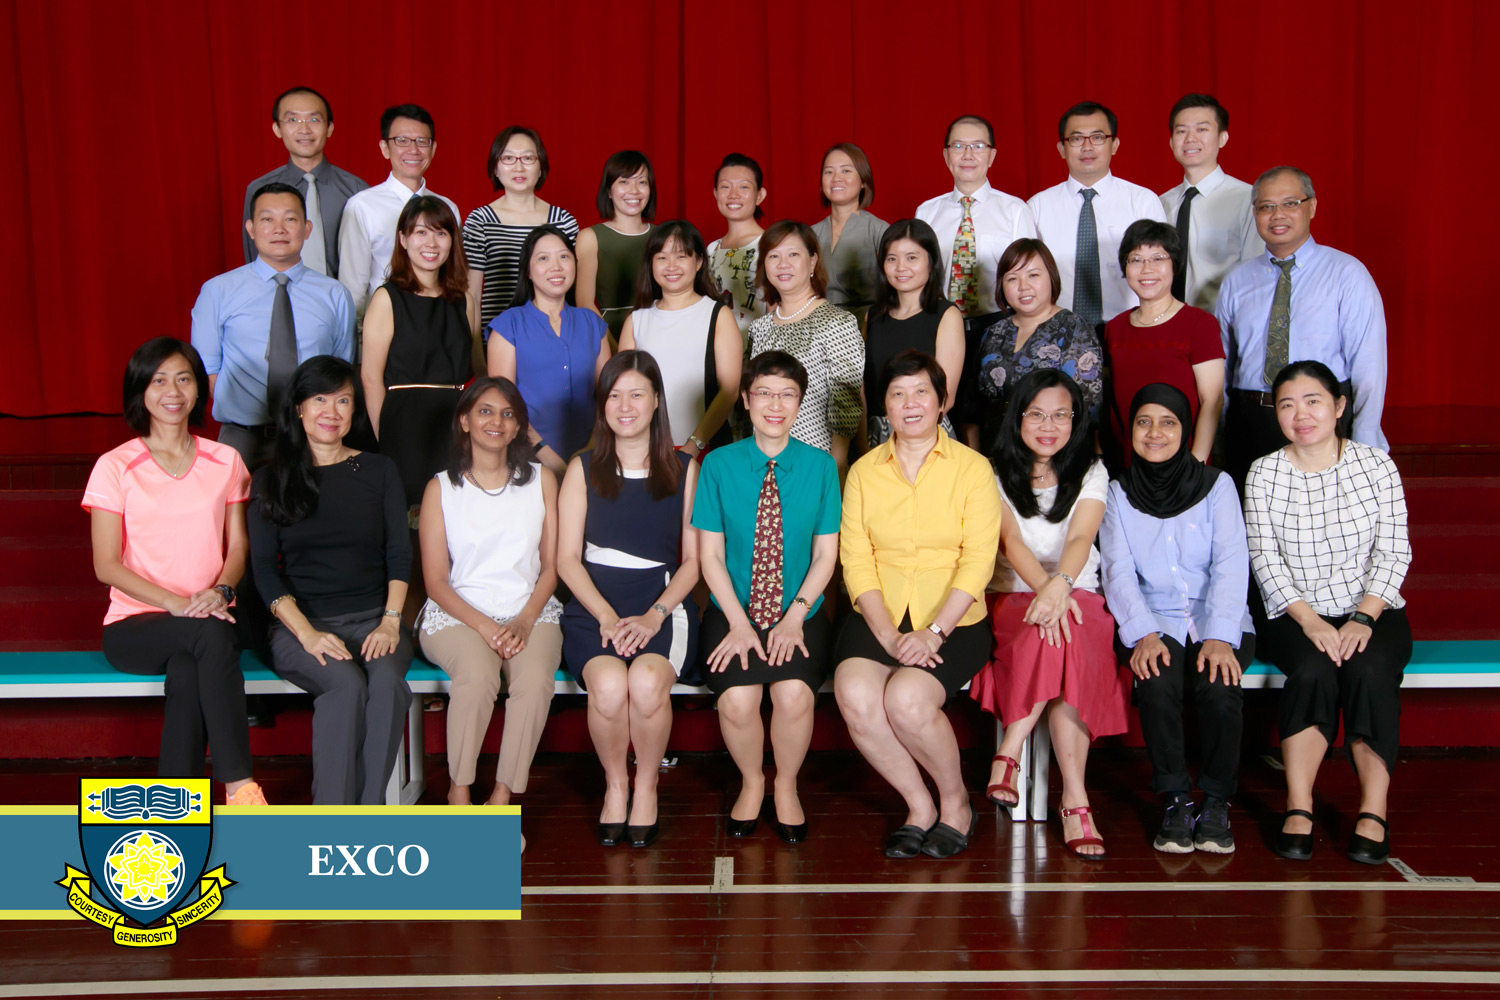 EXCO